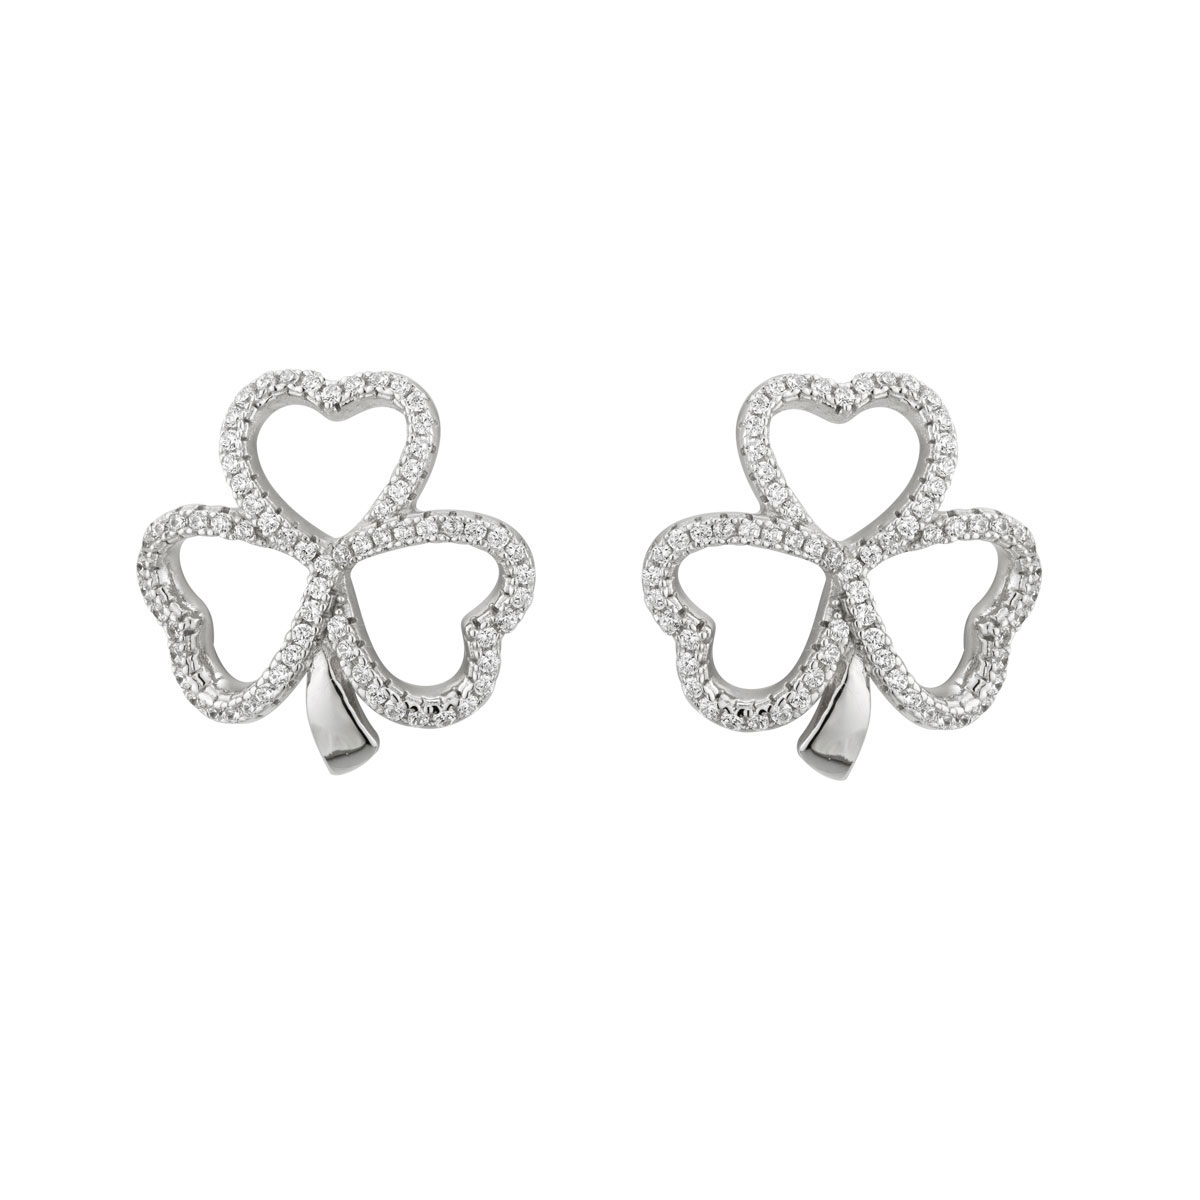 Cashs Ireland, Crystal Pave and Sterling Silver Shamrock Stud Pierced Earrings Pair